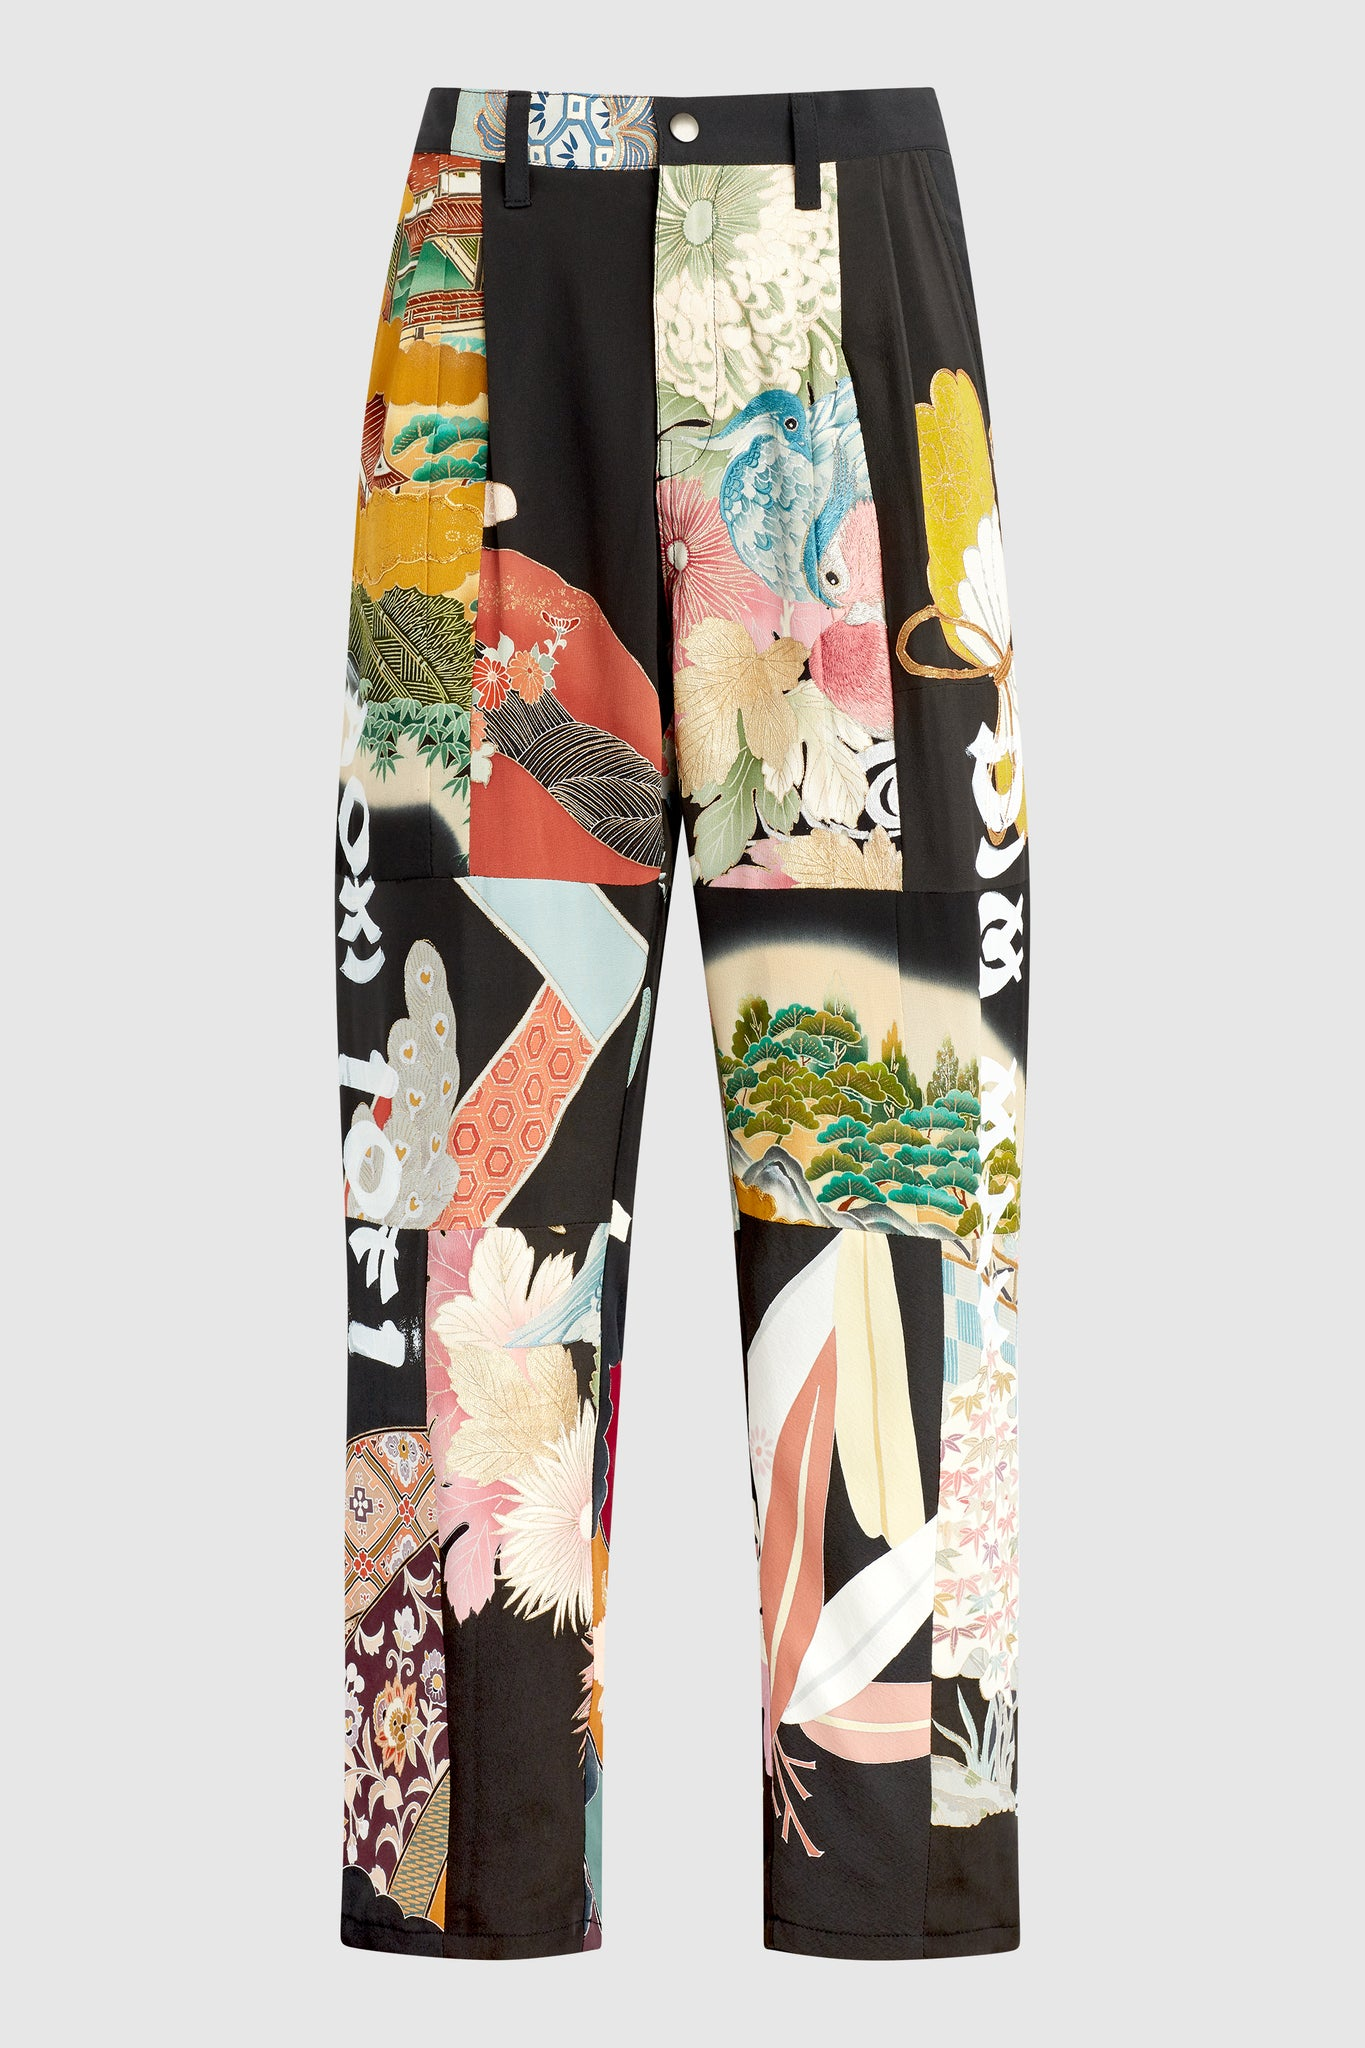 Cotemer x Aoki 1 of 1 Japanes Patchwork Trousers #220